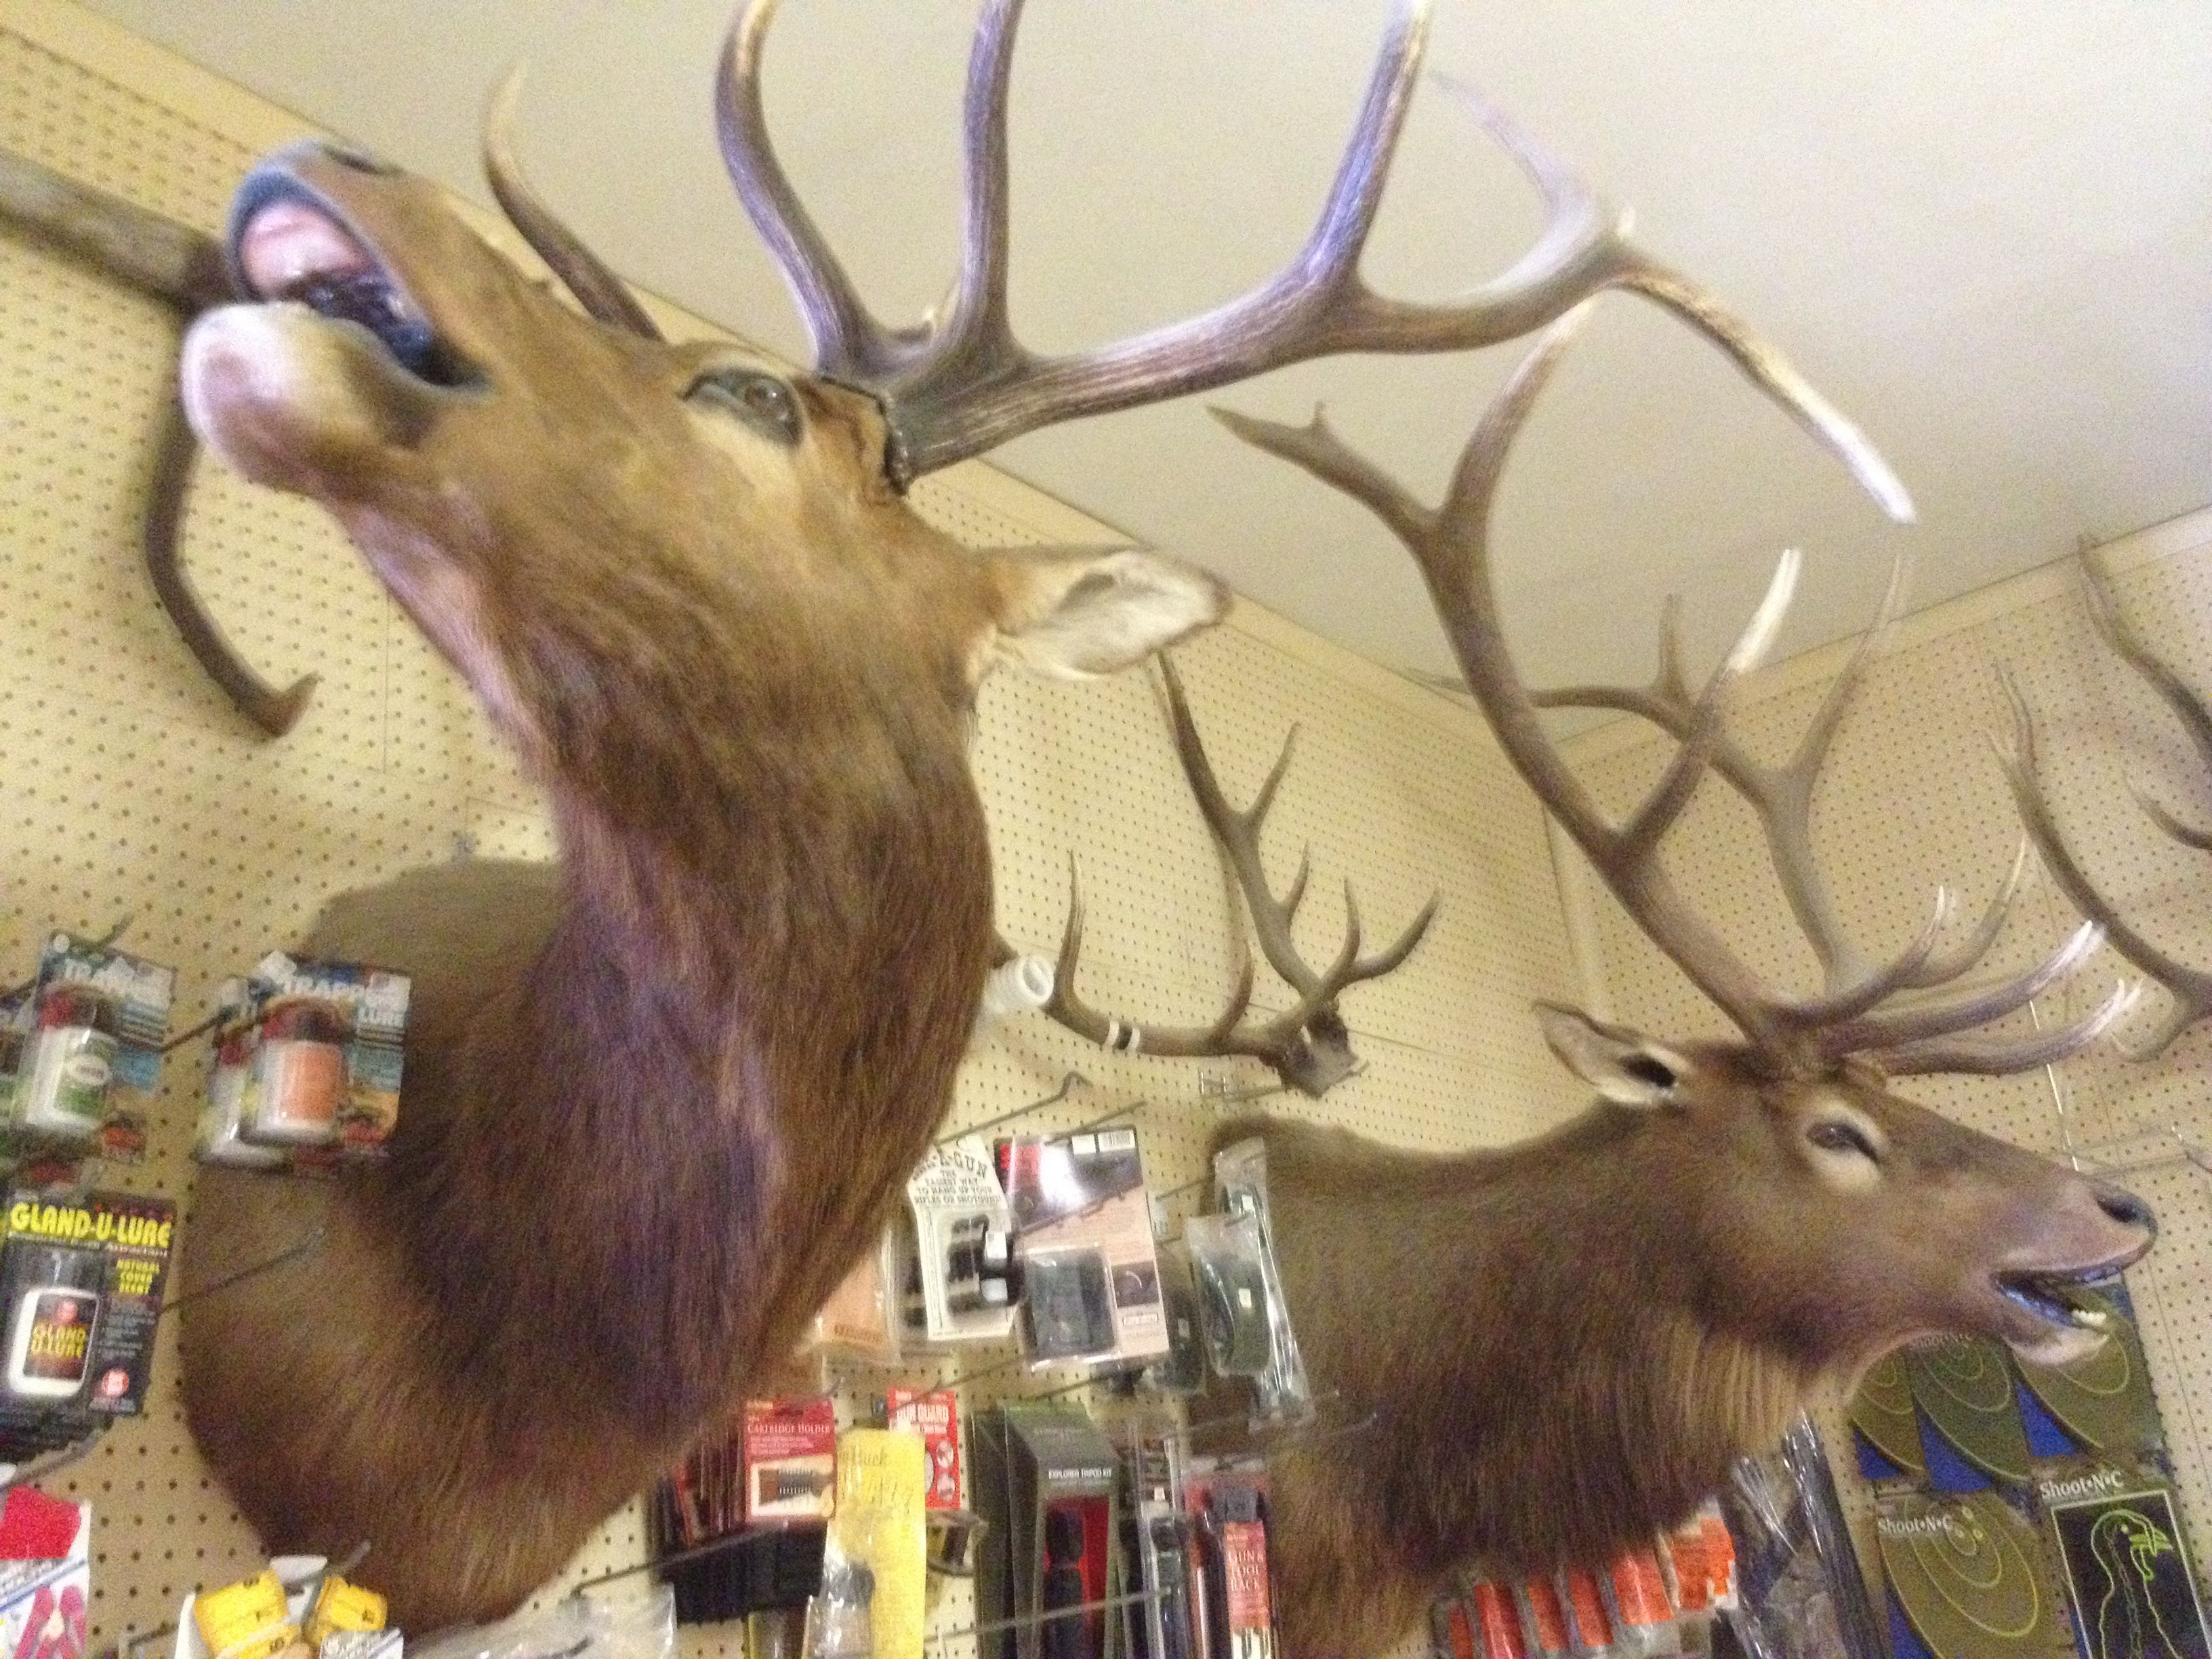 Ick! I hate seeing animal heads mounted on a wall for one, but deer ...